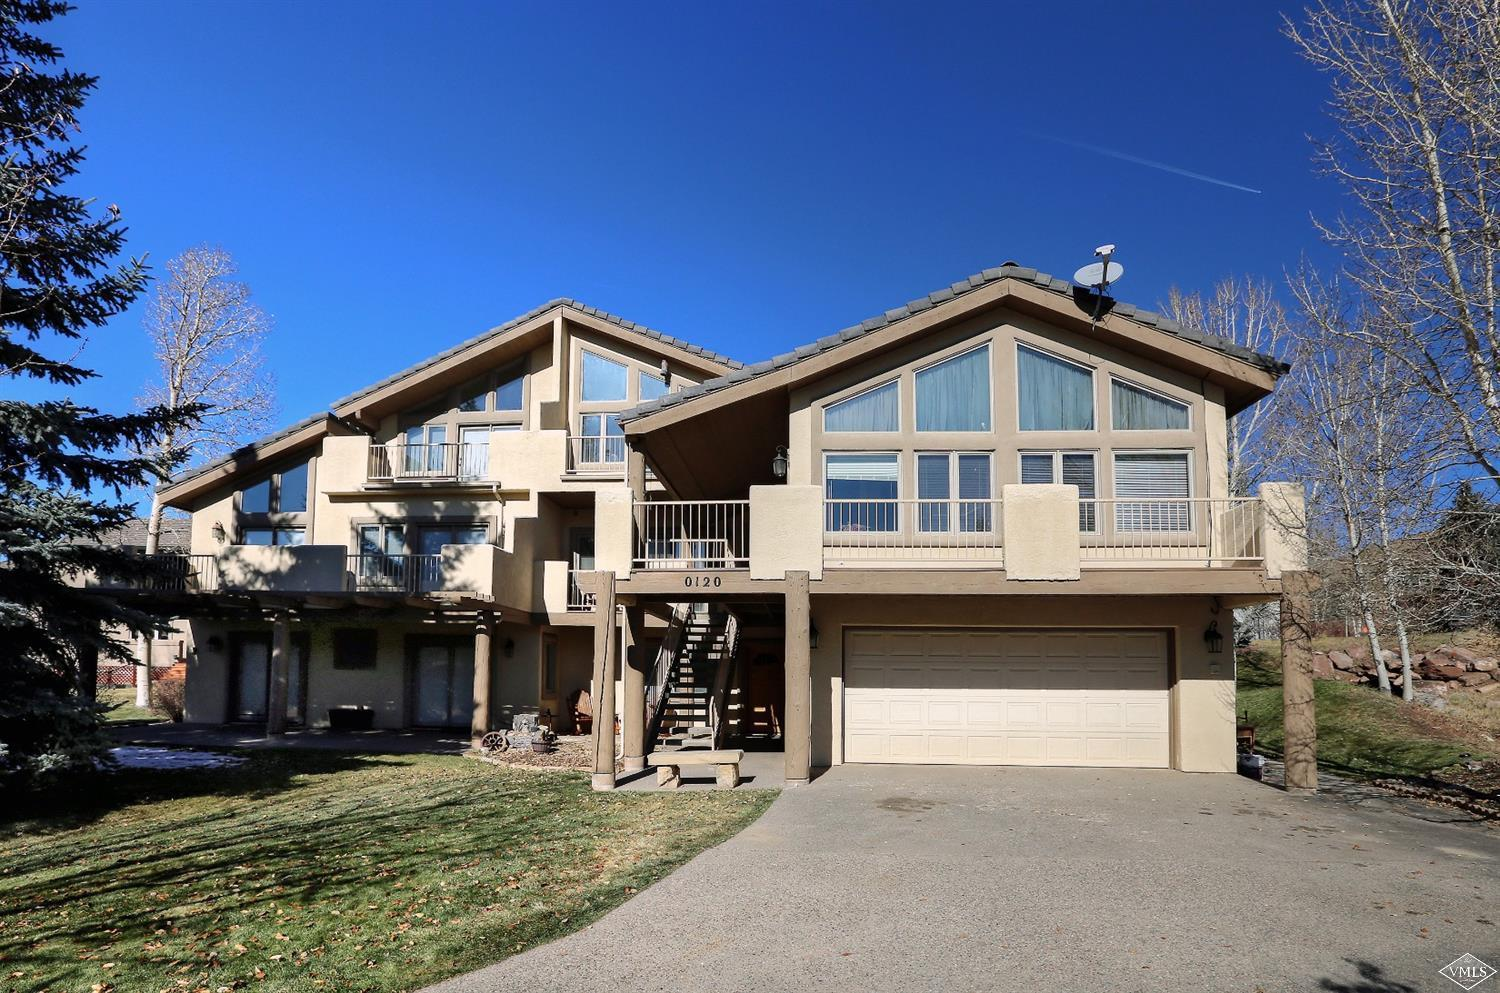 One of the best priced 4-bedroom homes in Singletree. Duplex with separate drive on quiet street, close to community center and park. Enjoy multiple decks, great lighting and mountain views.